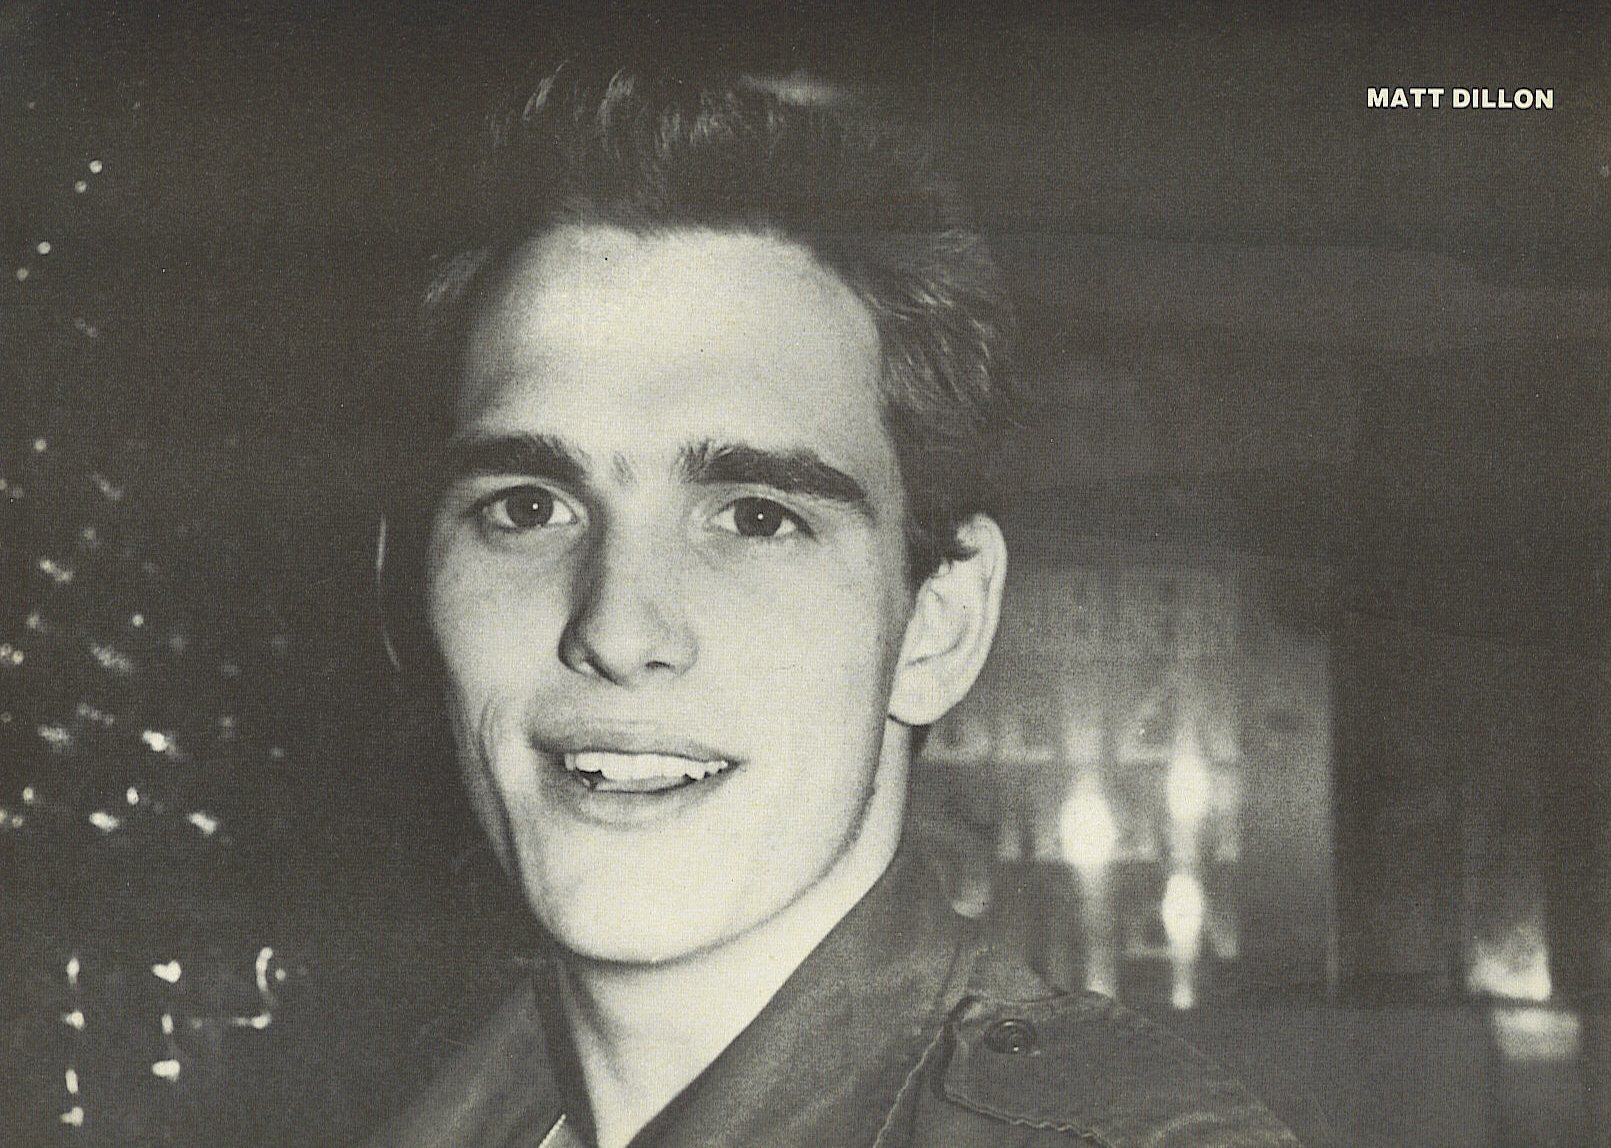 Matt Dillon image matt dillon HD wallpapers and backgrounds photos